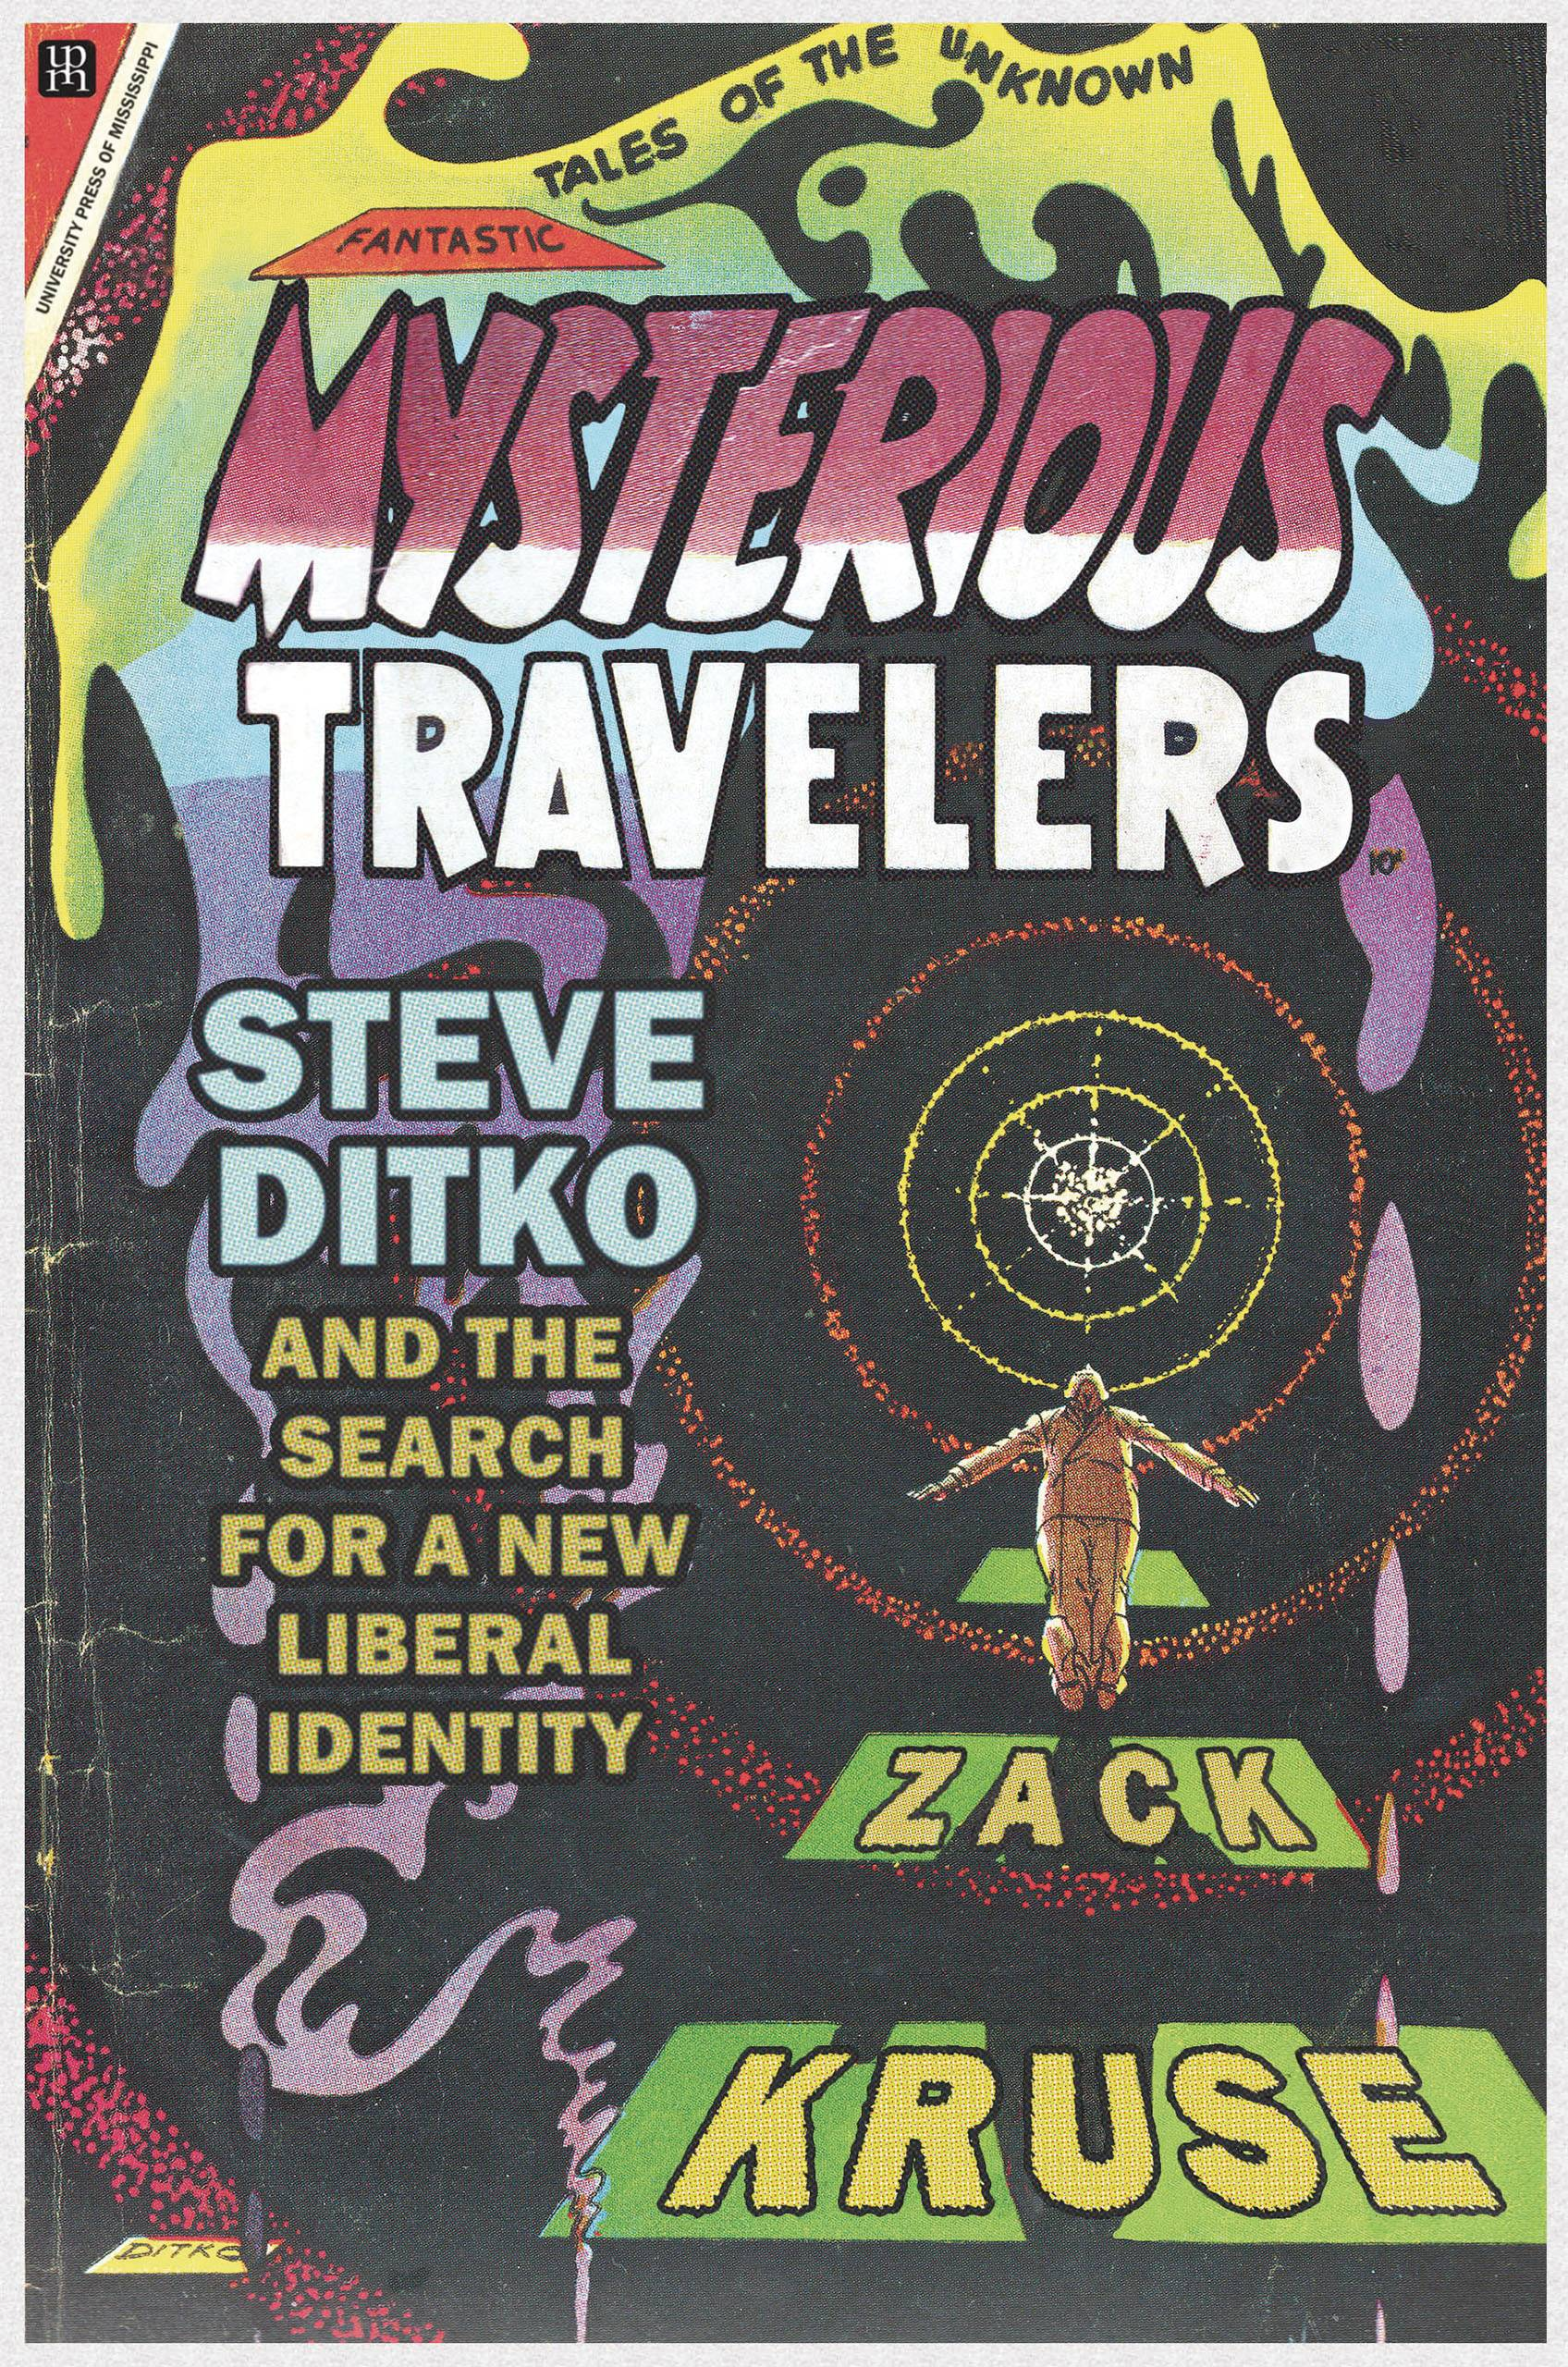 MYSTERIOUS TRAVELERS DITKO & SEARCH FOR NEW LIBERAL IDENTITY